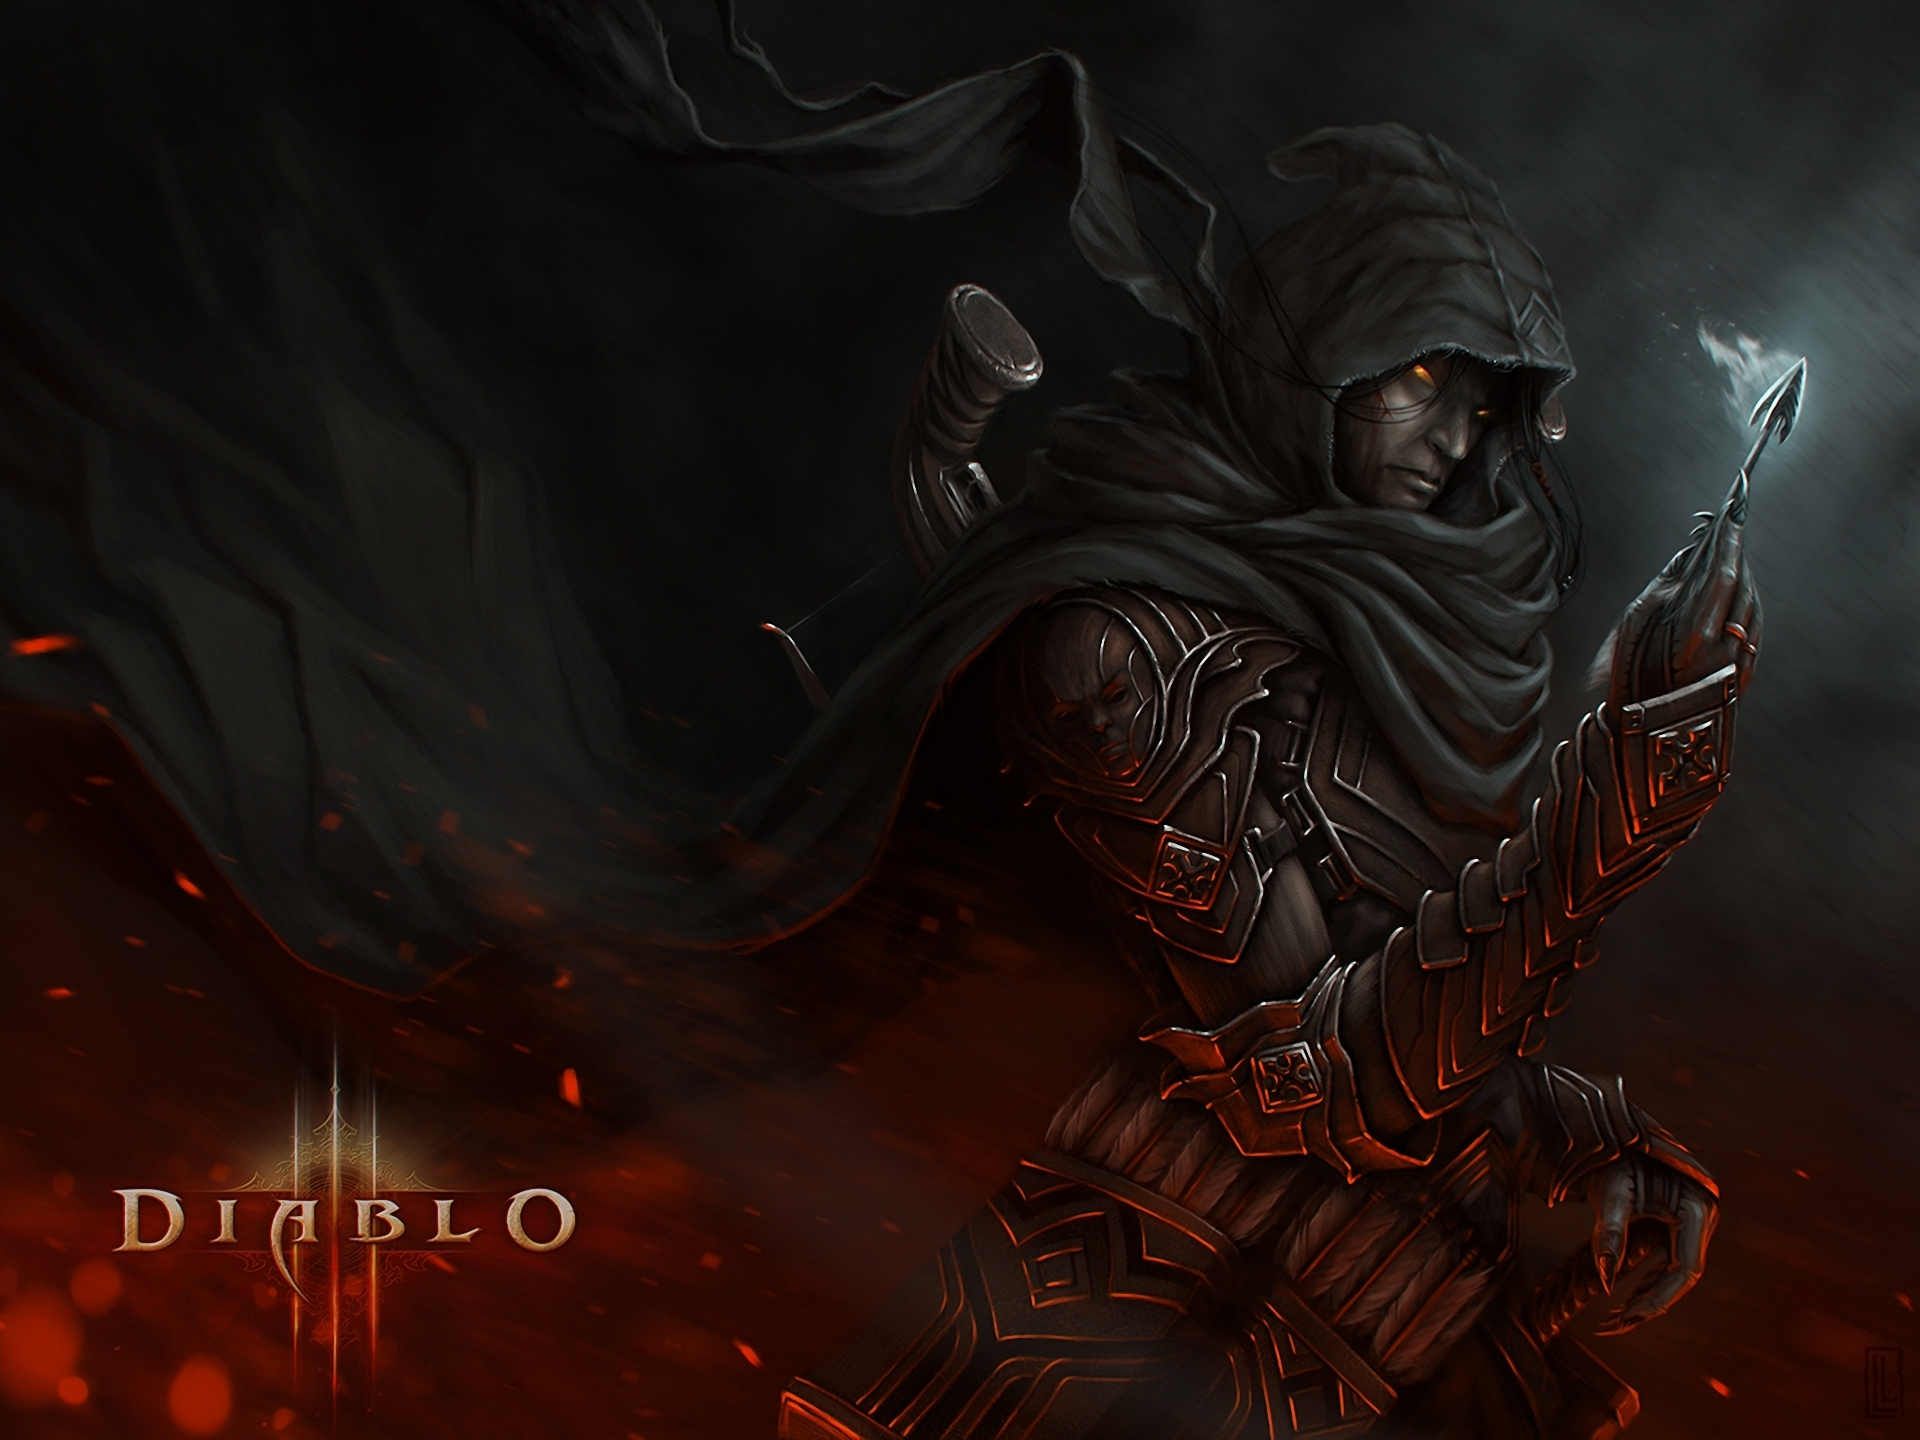 116 demon hunter (diablo iii) fonds d'écran hd | arrière-plans